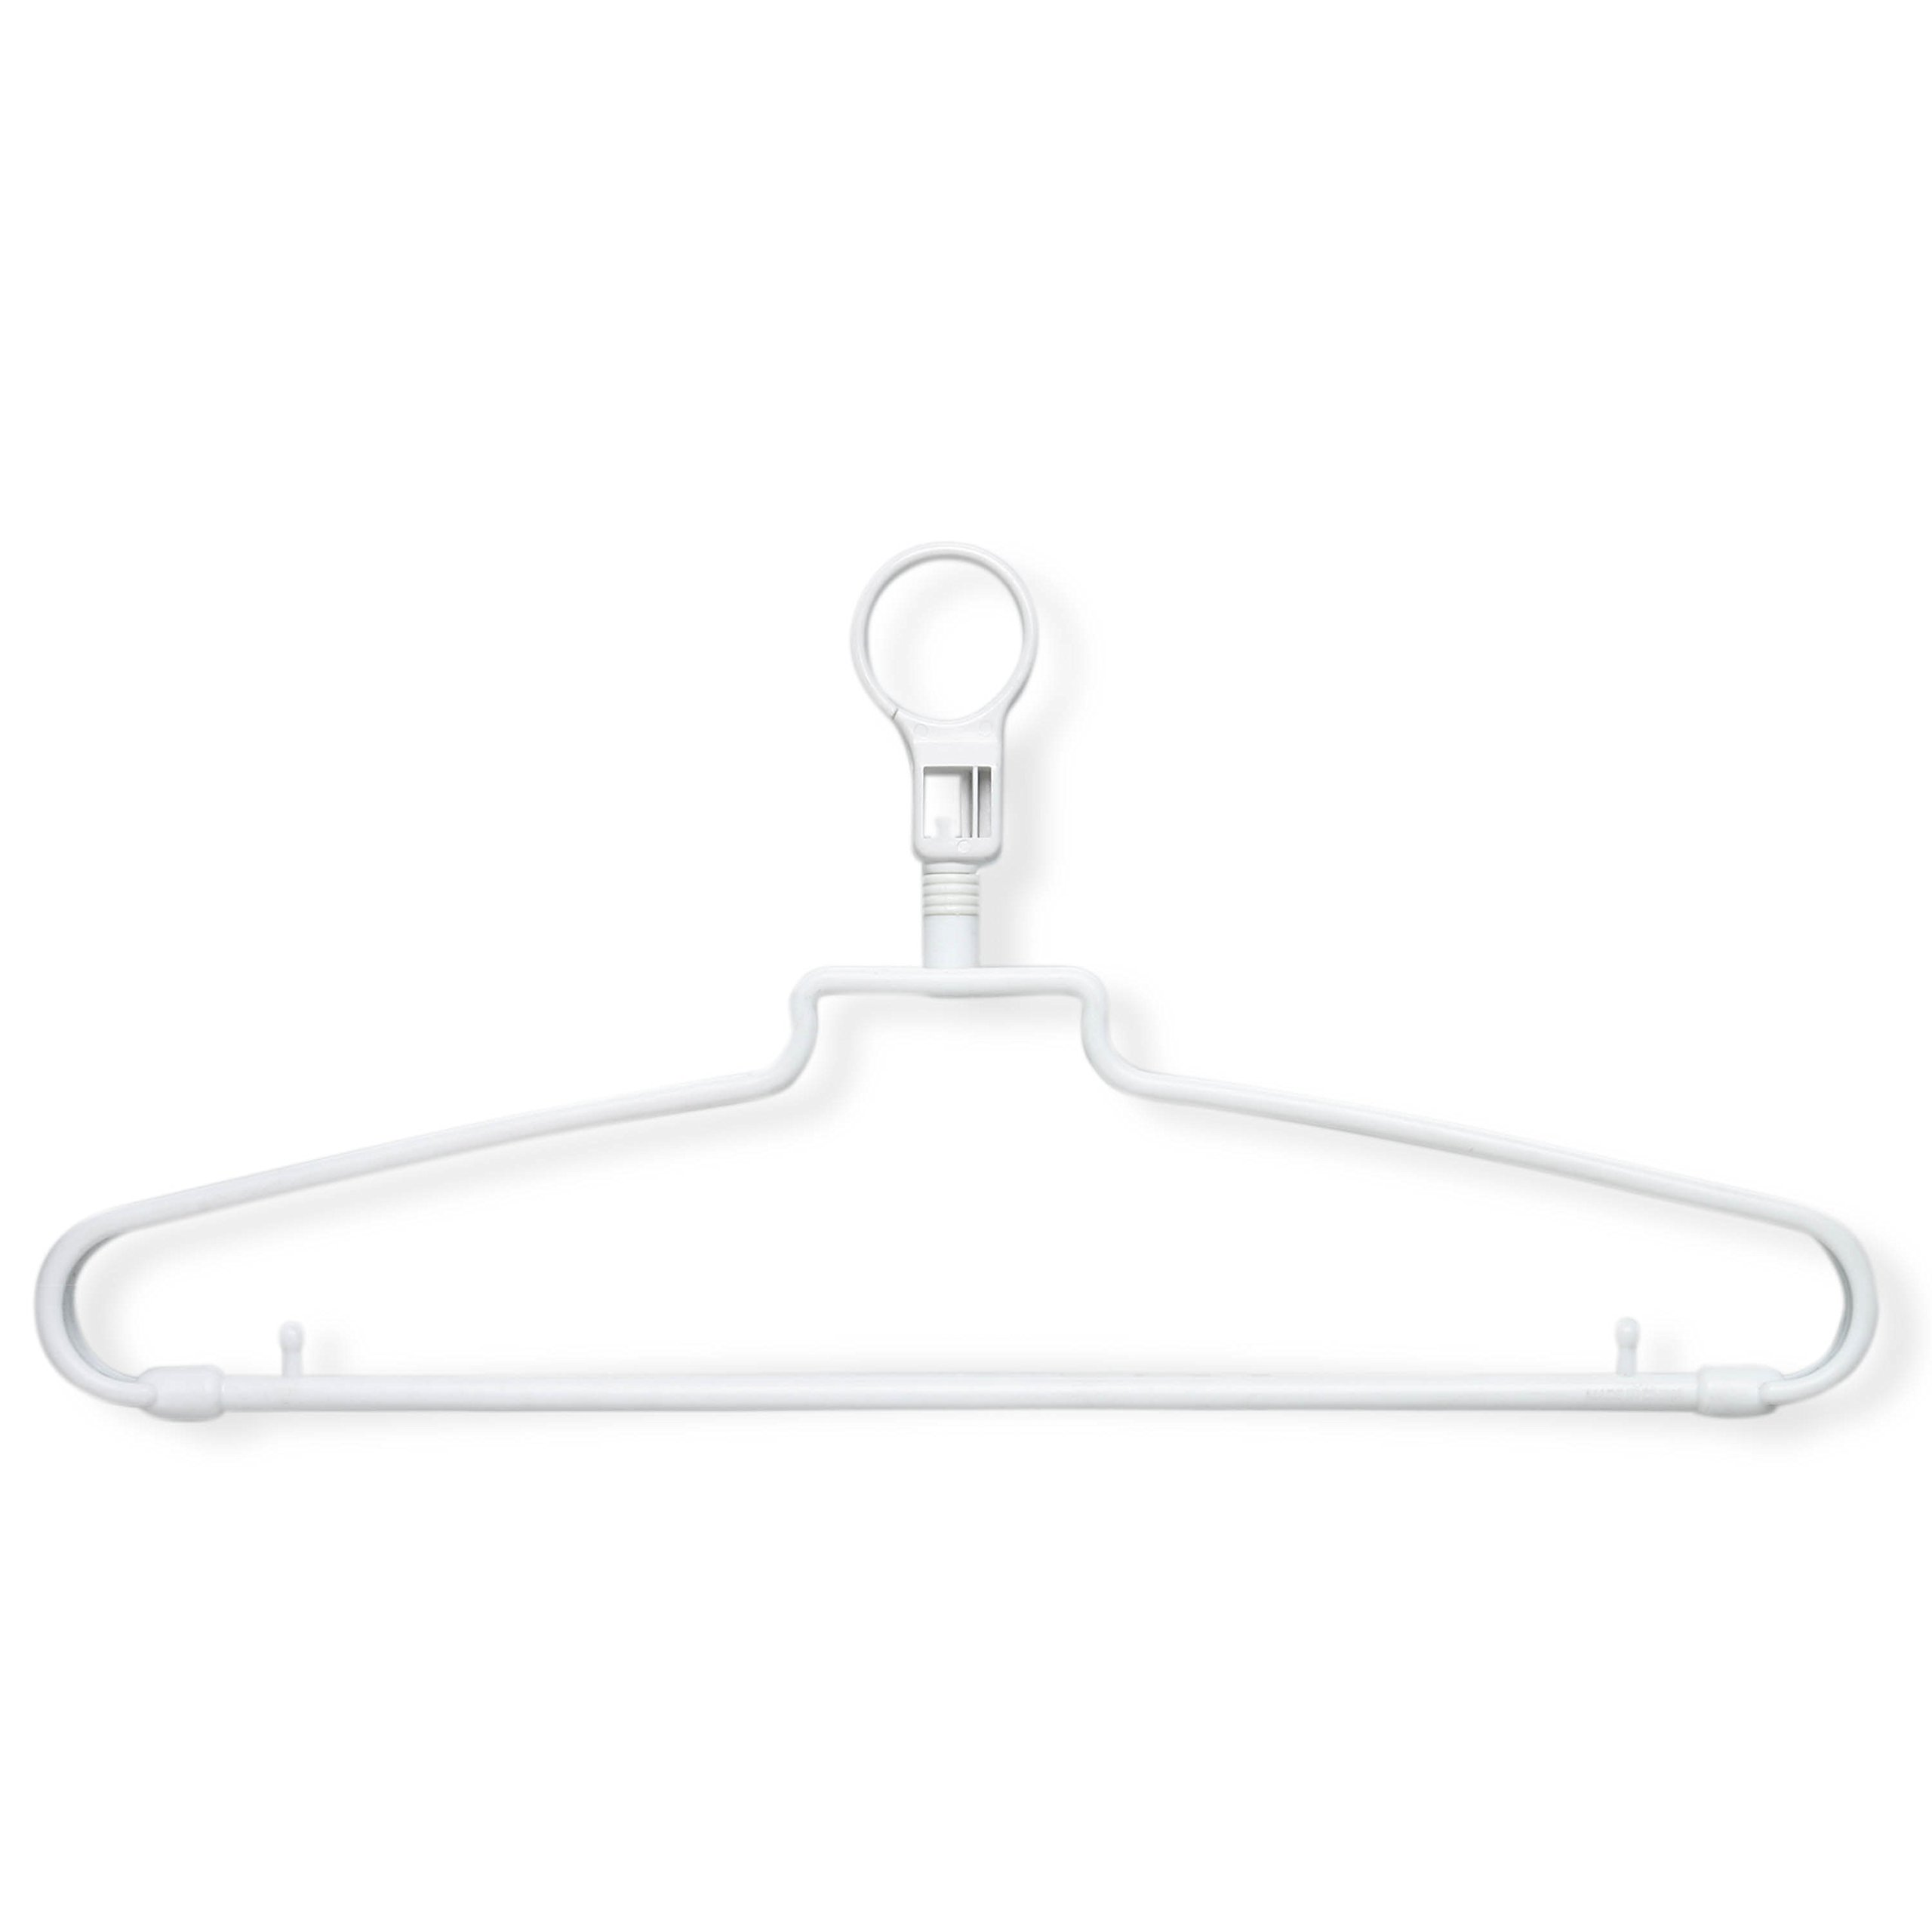 Honey-Can-Do HNG-01356 Hotel Hangers with Security Loop, 72-Pack